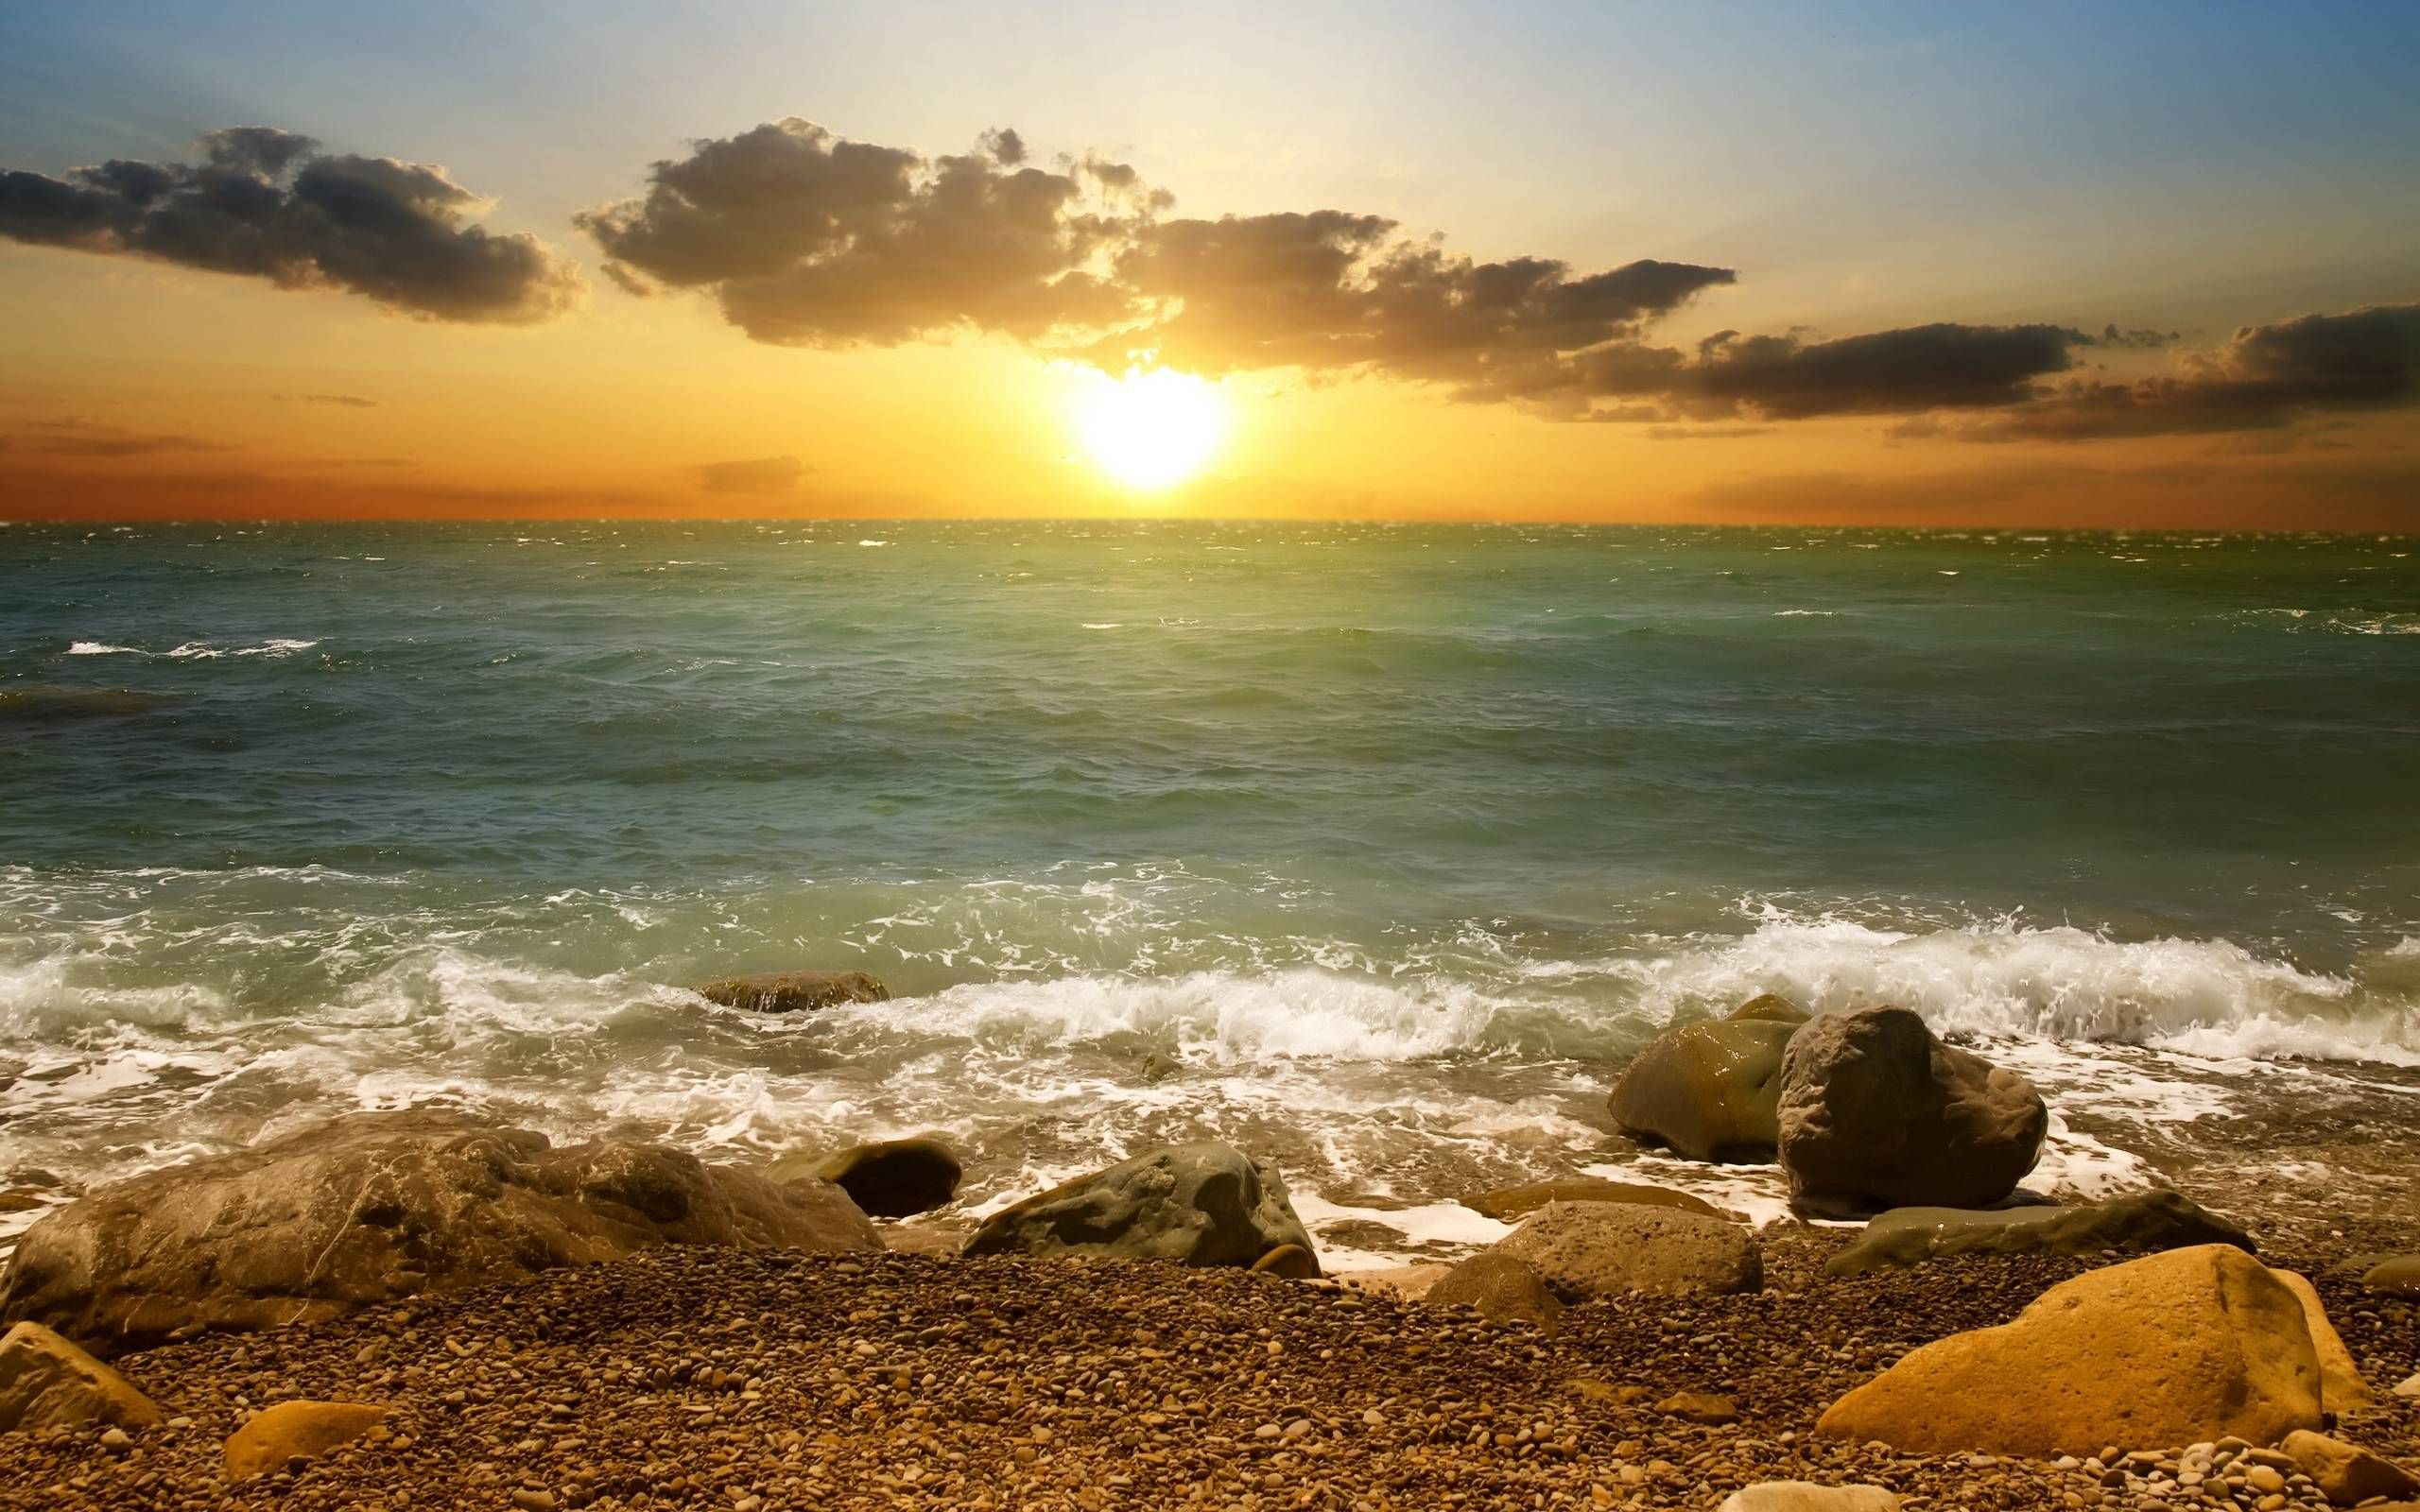 Must see Wallpaper High Quality Ocean - ababa5cb9a30ec134e91e5ba61a6af7c  You Should Have_778788.jpg